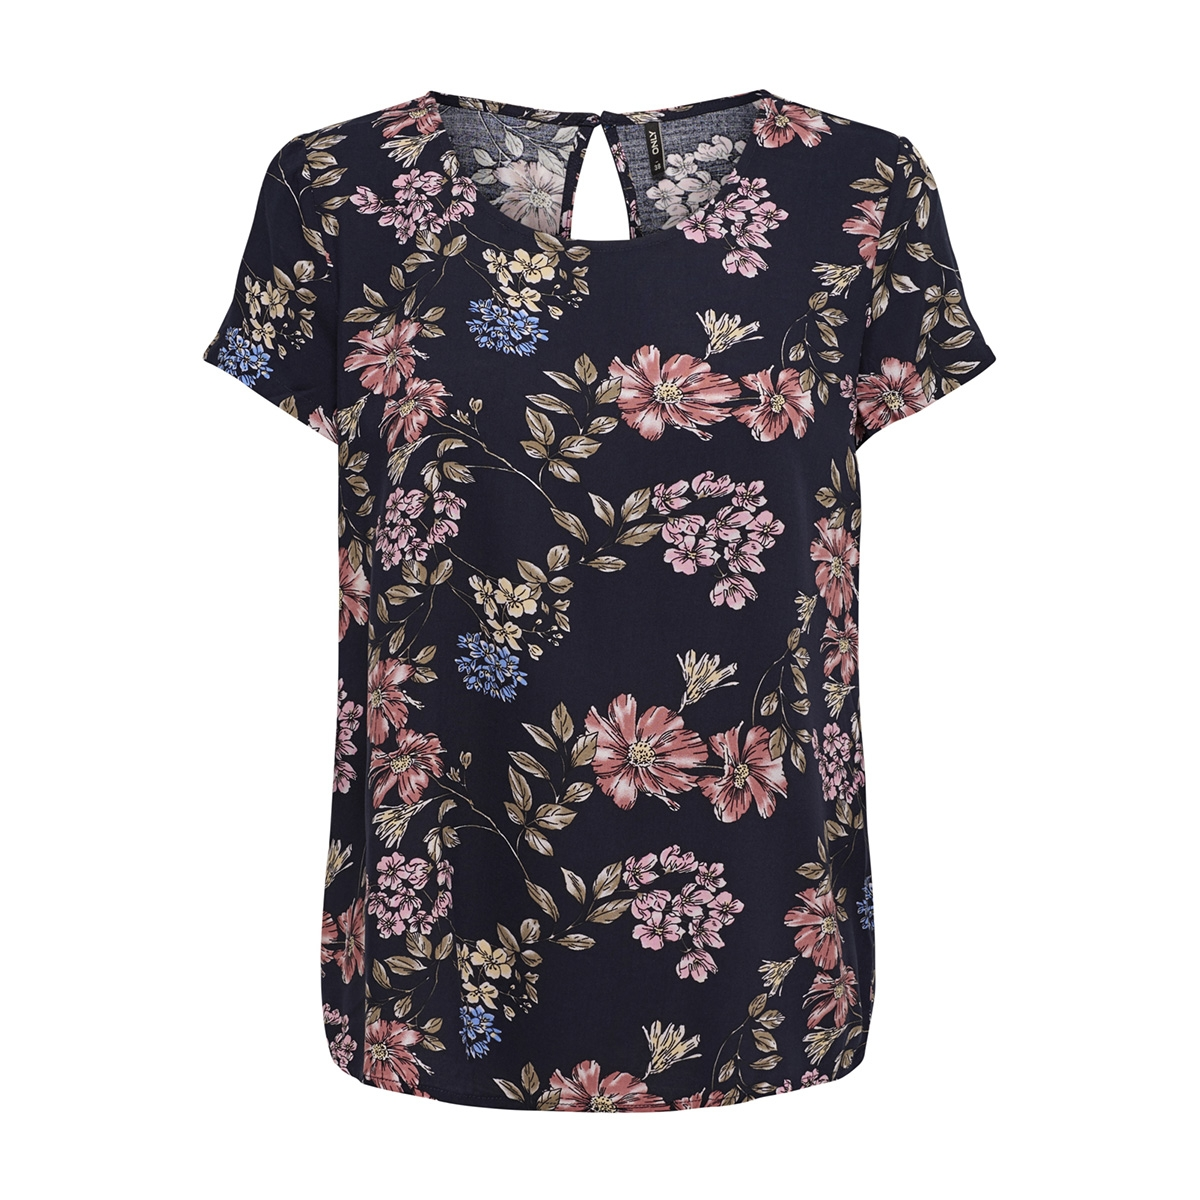 onlfirst ss mix aop top  noos wvn 15138761 only t-shirt night sky/flower